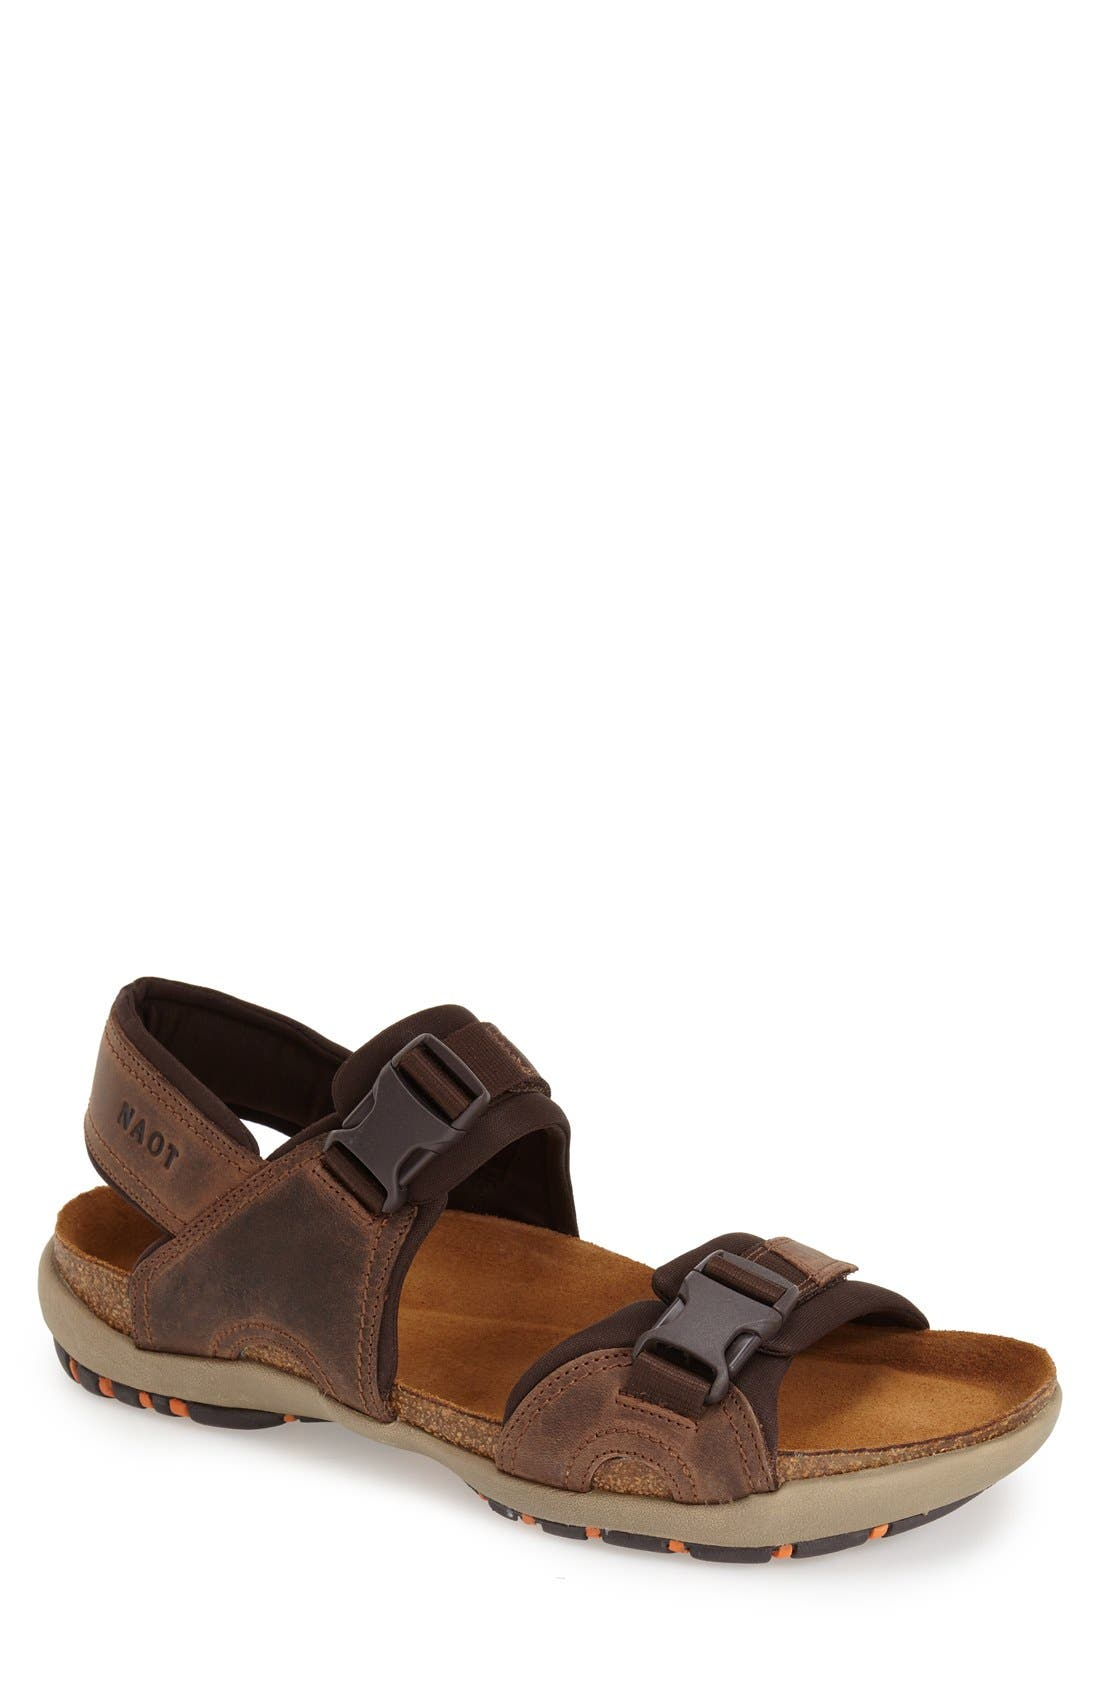 Explorer Sandal,                             Main thumbnail 1, color,                             Bison Leather